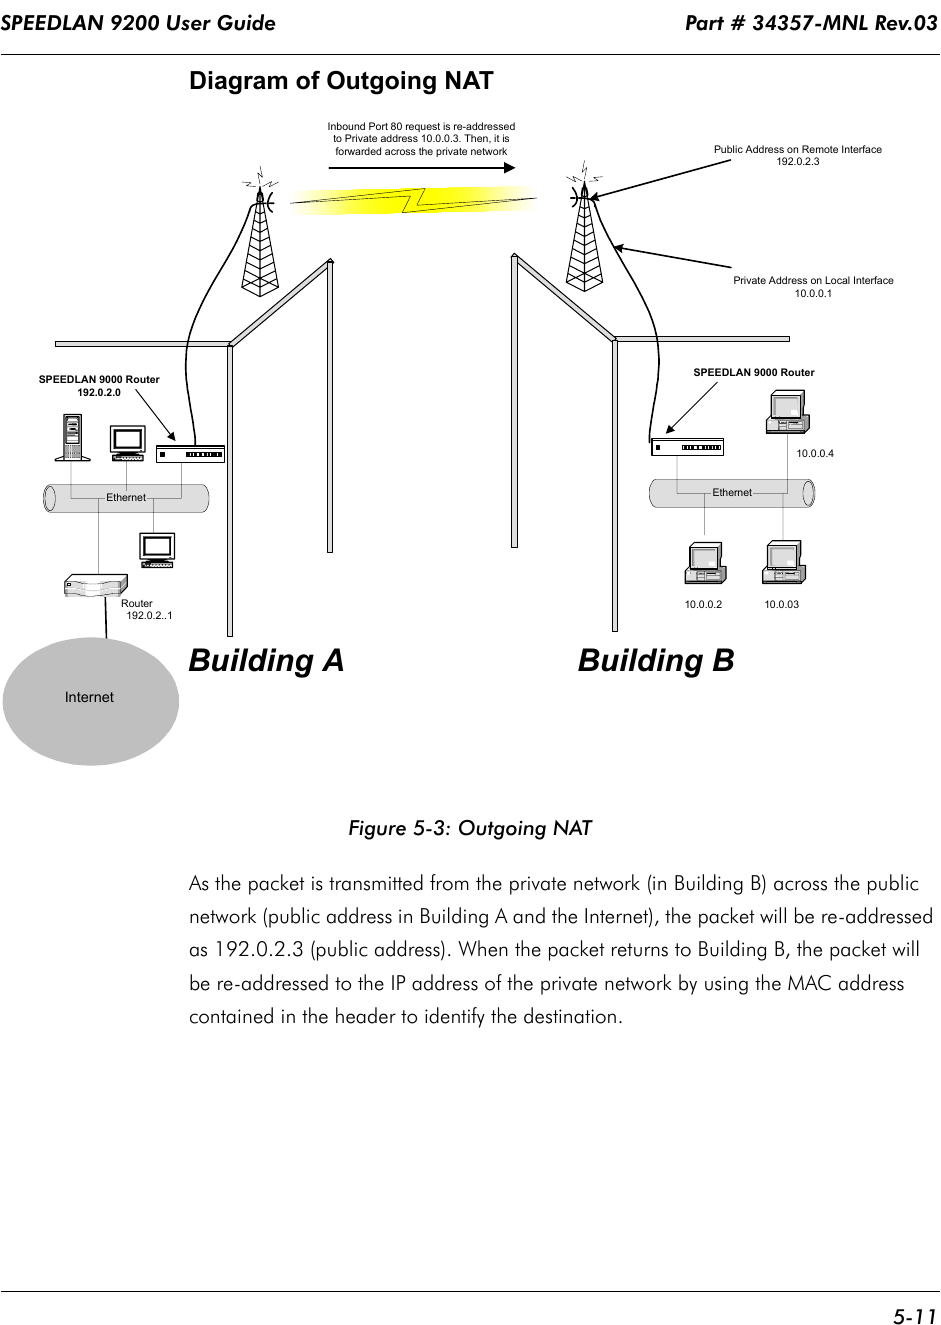 SPEEDLAN 9200 User Guide                                                                   Part # 34357-MNL Rev.03      5-11                                                                                                                                                              Diagram of Outgoing NATFigure 5-3: Outgoing NATAs the packet is transmitted from the private network (in Building B) across the public network (public address in Building A and the Internet), the packet will be re-addressed as 192.0.2.3 (public address). When the packet returns to Building B, the packet will be re-addressed to the IP address of the private network by using the MAC address contained in the header to identify the destination.  Inbound Port 80 request is re-addressedto Private address 10.0.0.3. Then, it isforwarded across the private networkEthernet                               Router                                        192.0.2..1Private Address on Local Interface10.0.0.110.0.0.2                     10.0.0.4EthernetPublic Address on Remote Interface192.0.2.3Building A Building BSPEEDLAN 9000 Router192.0.2.0SPEEDLAN 9000 Router10.0.03–Internet